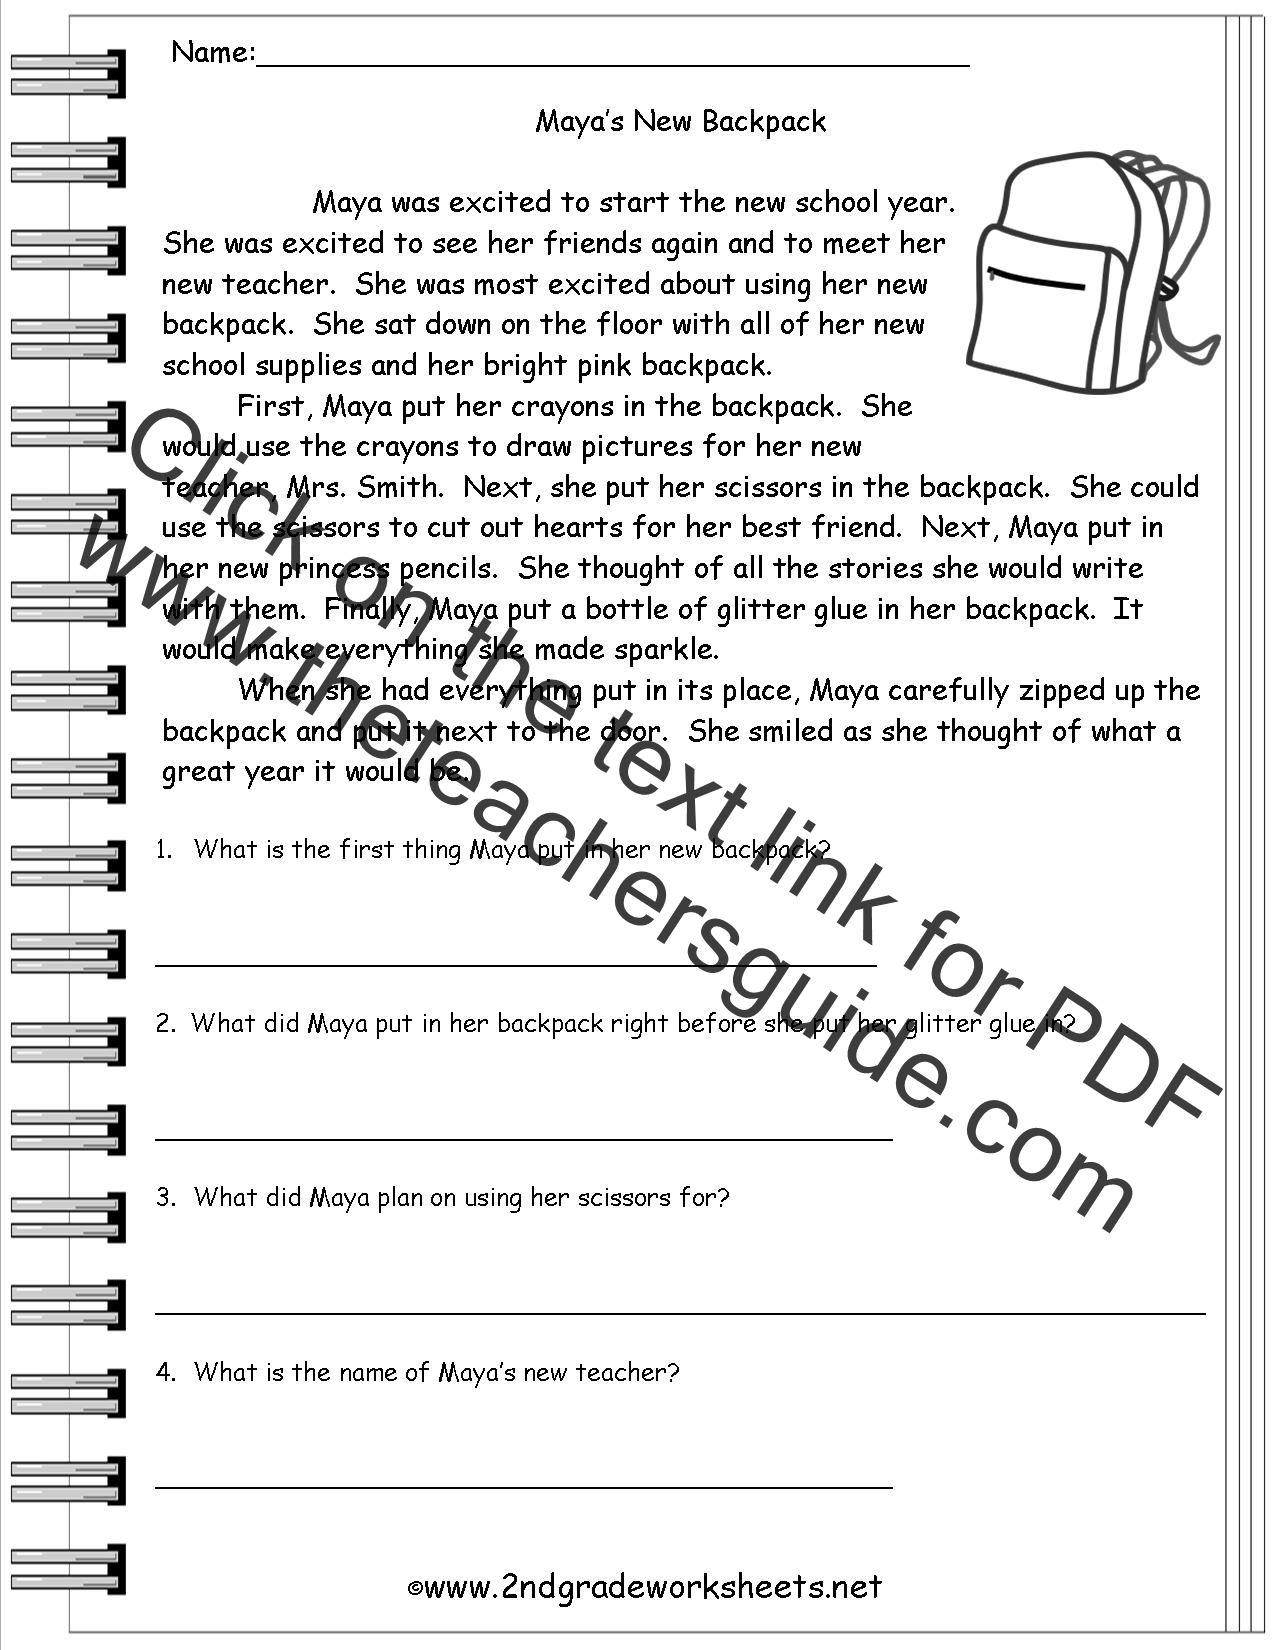 Worksheets Free 2nd Grade Reading Comprehension Worksheets reading worksheeets literature worksheets